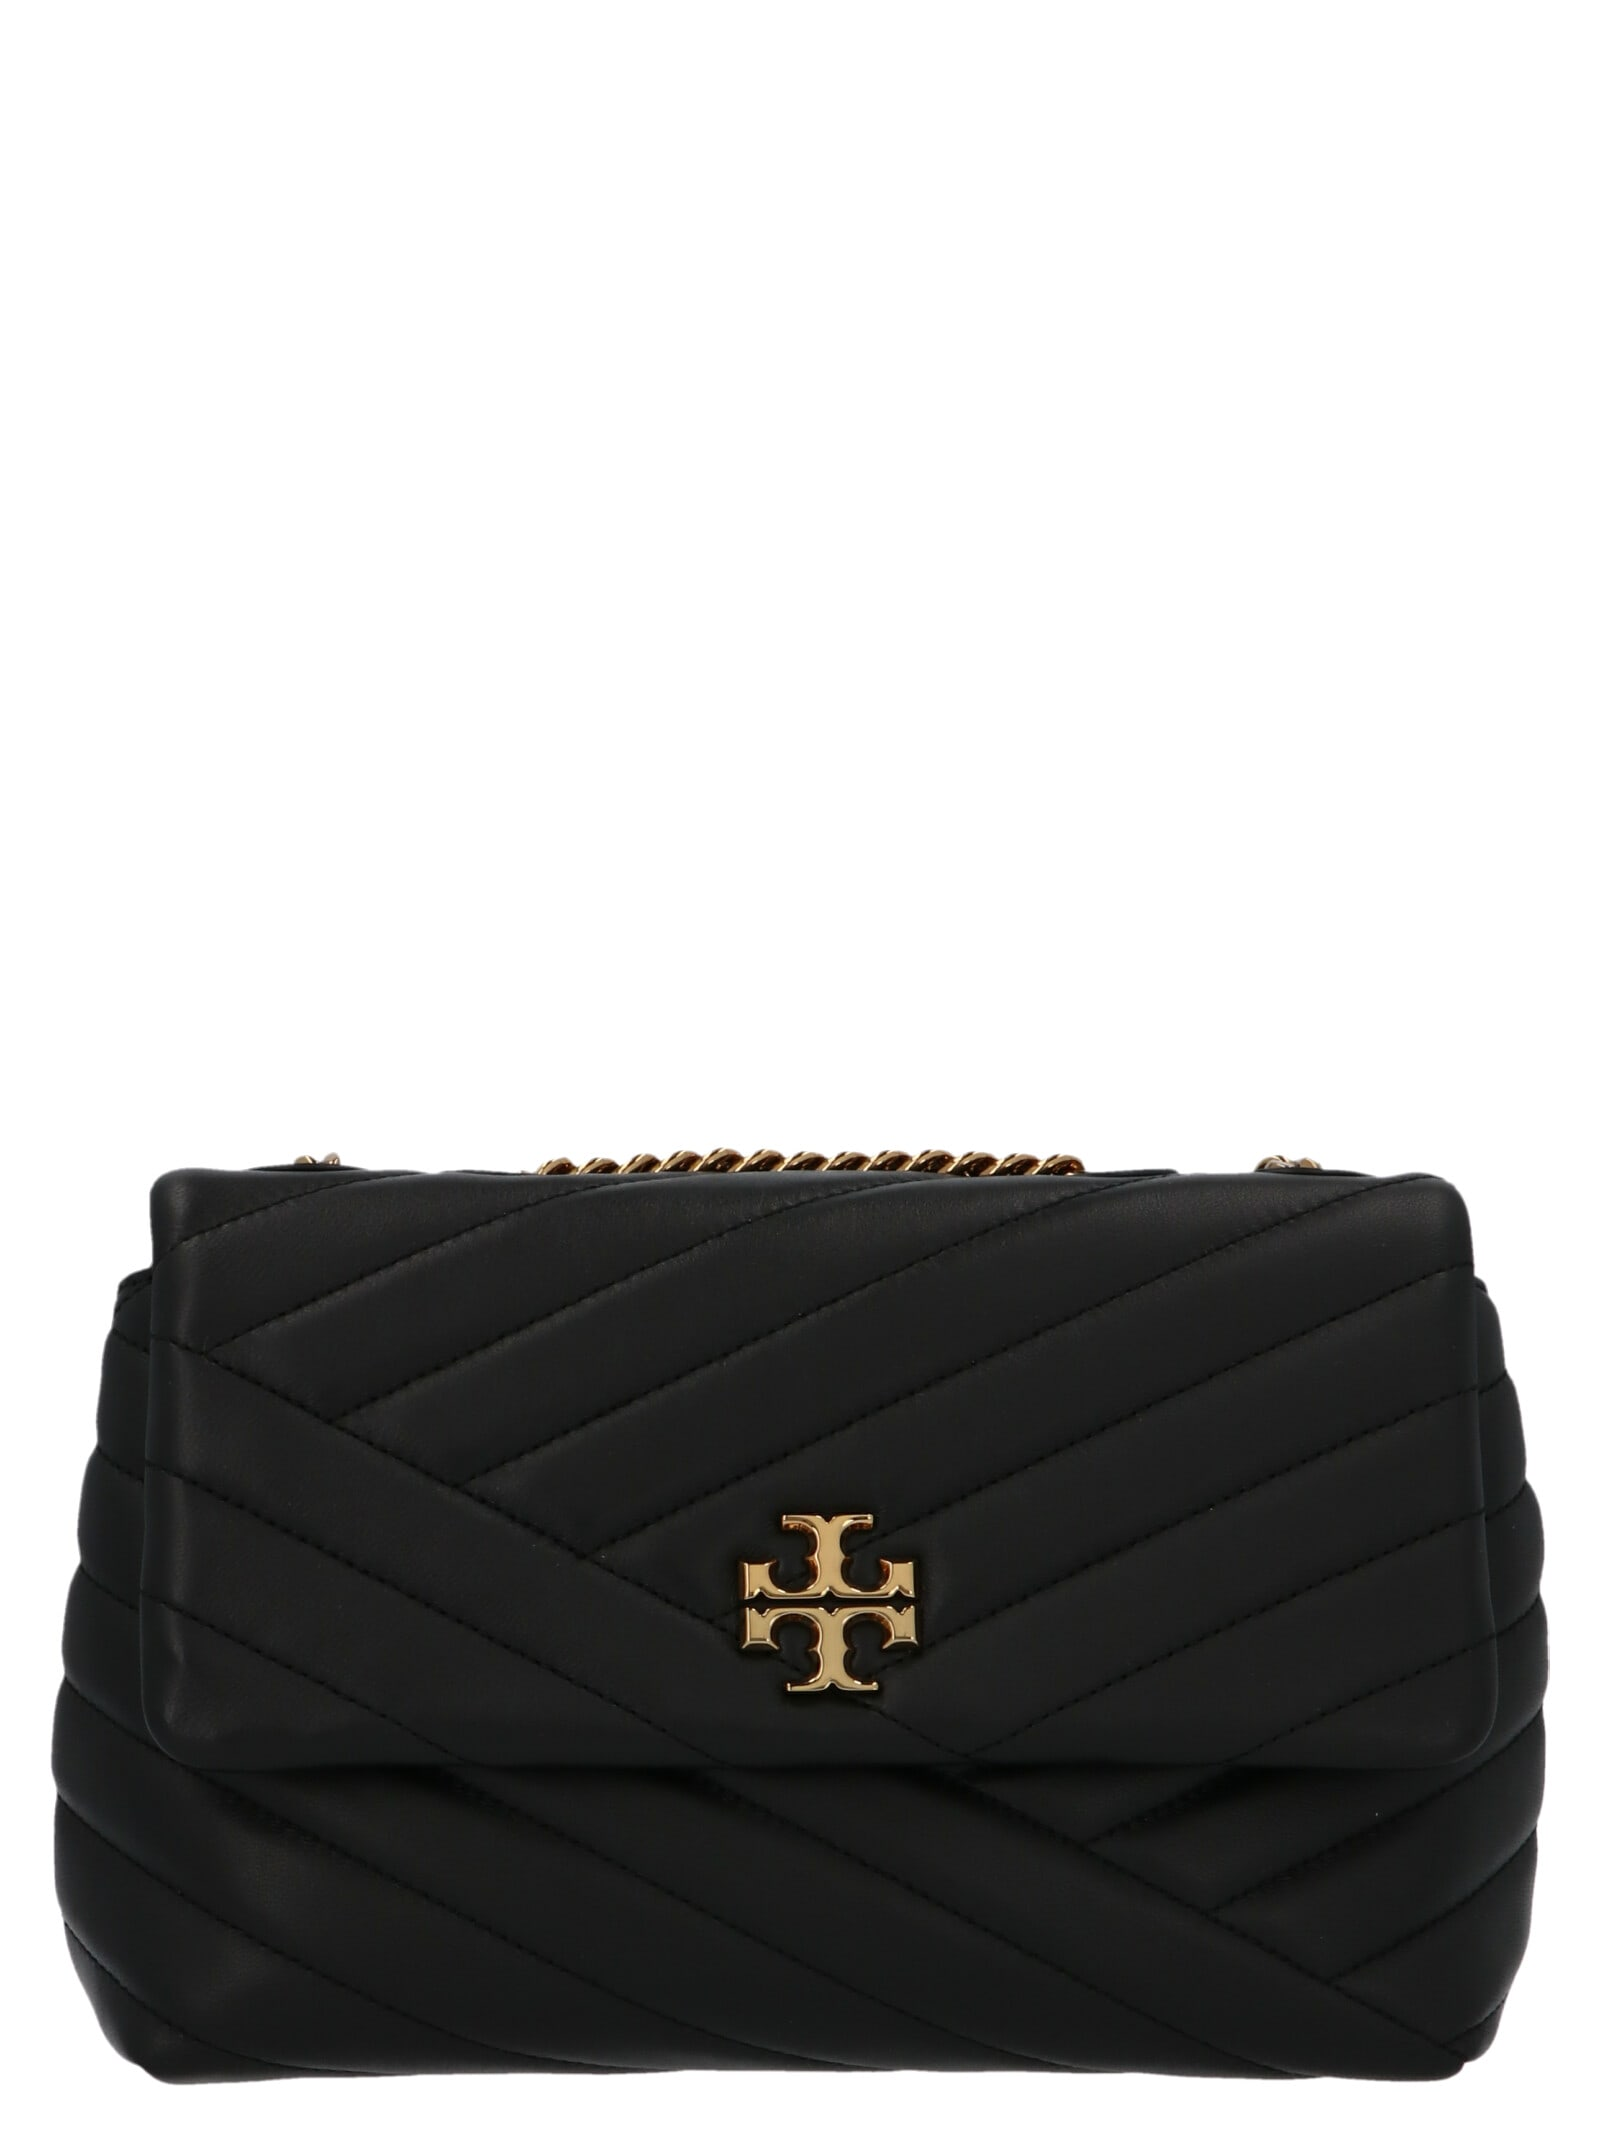 Tory Burch kira Chevron Small Bag